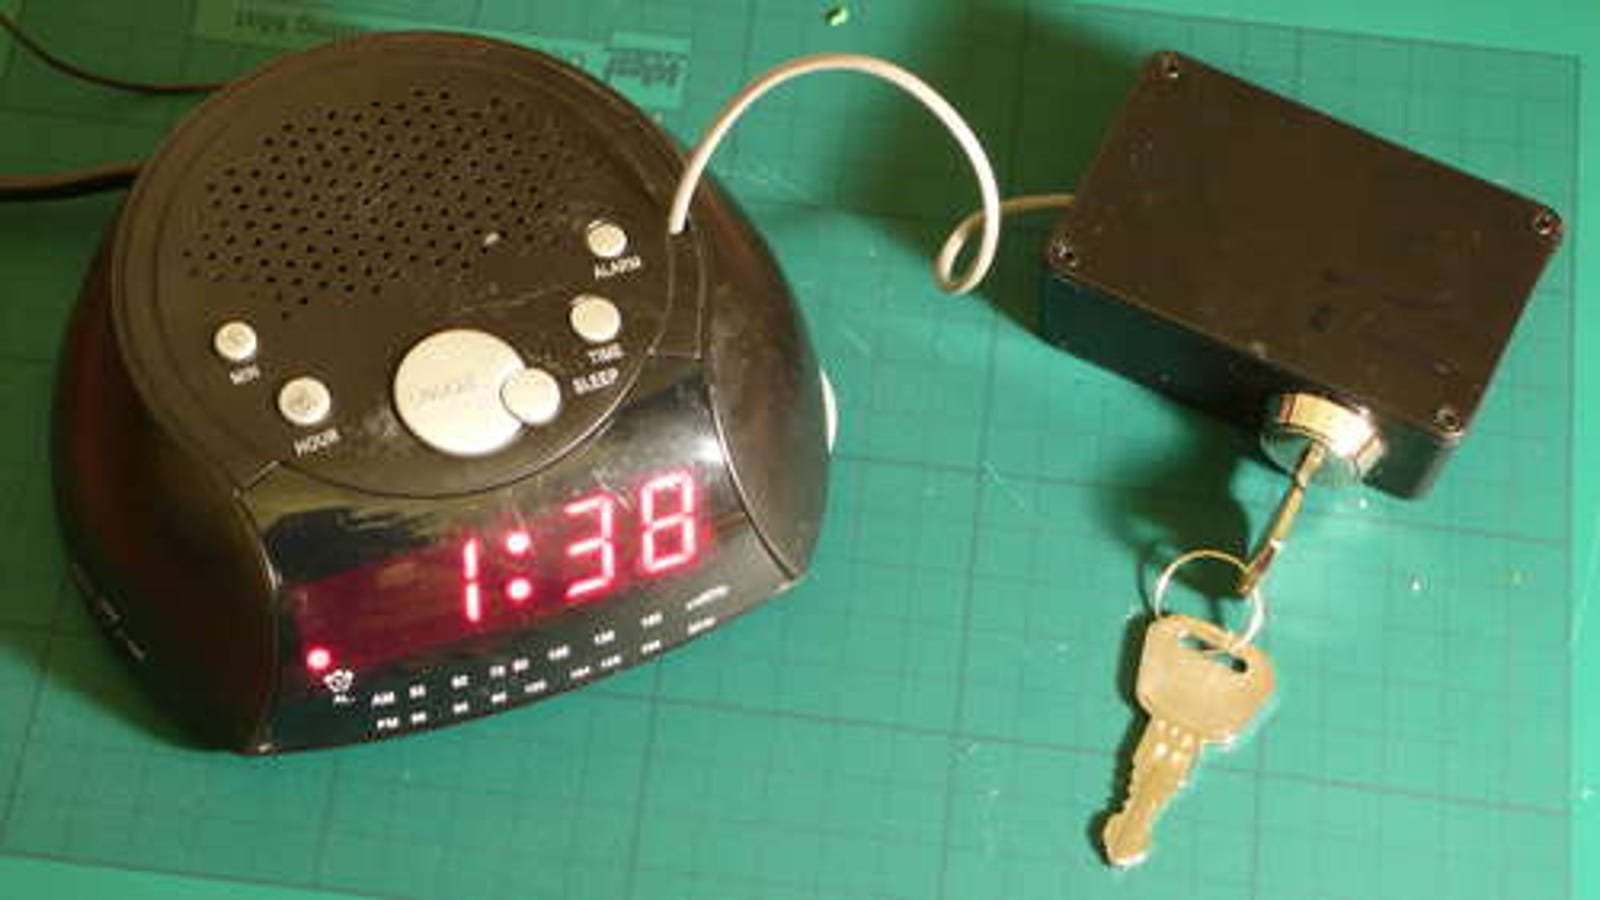 DIY: Safety Alarm Clock Locks In Your Snooze and Throws Away